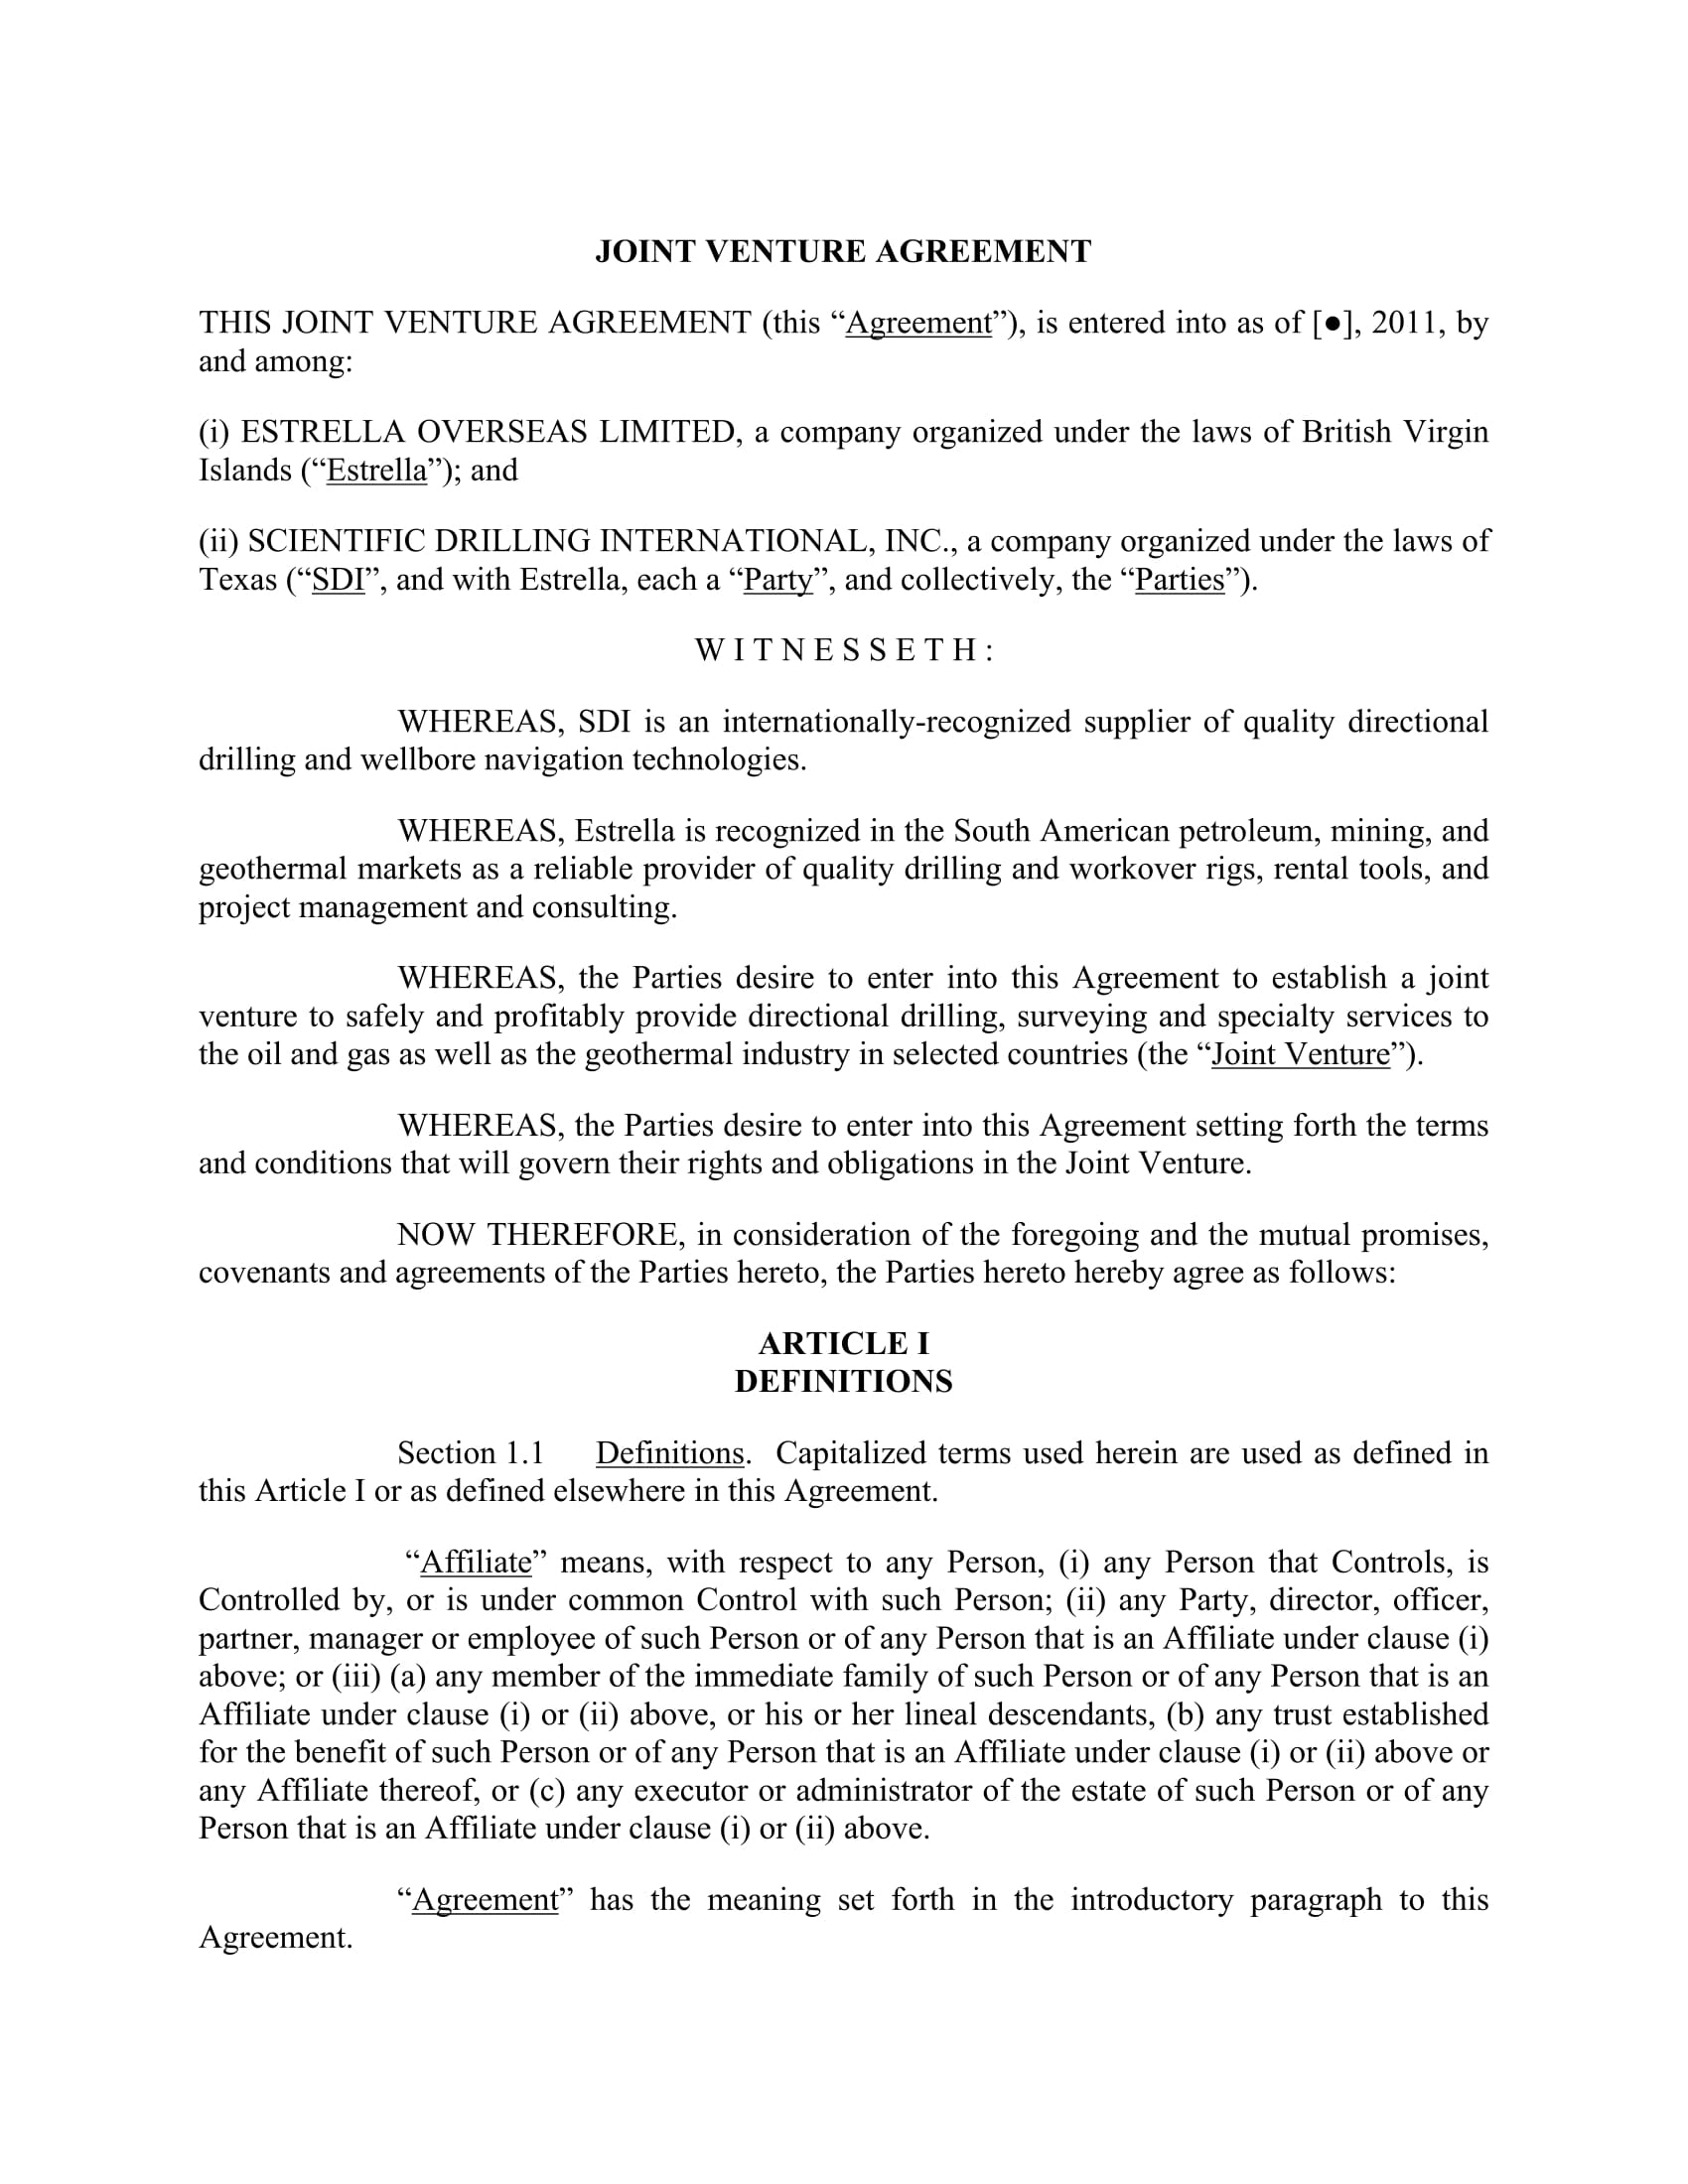 texas joint venture agreement form example 01